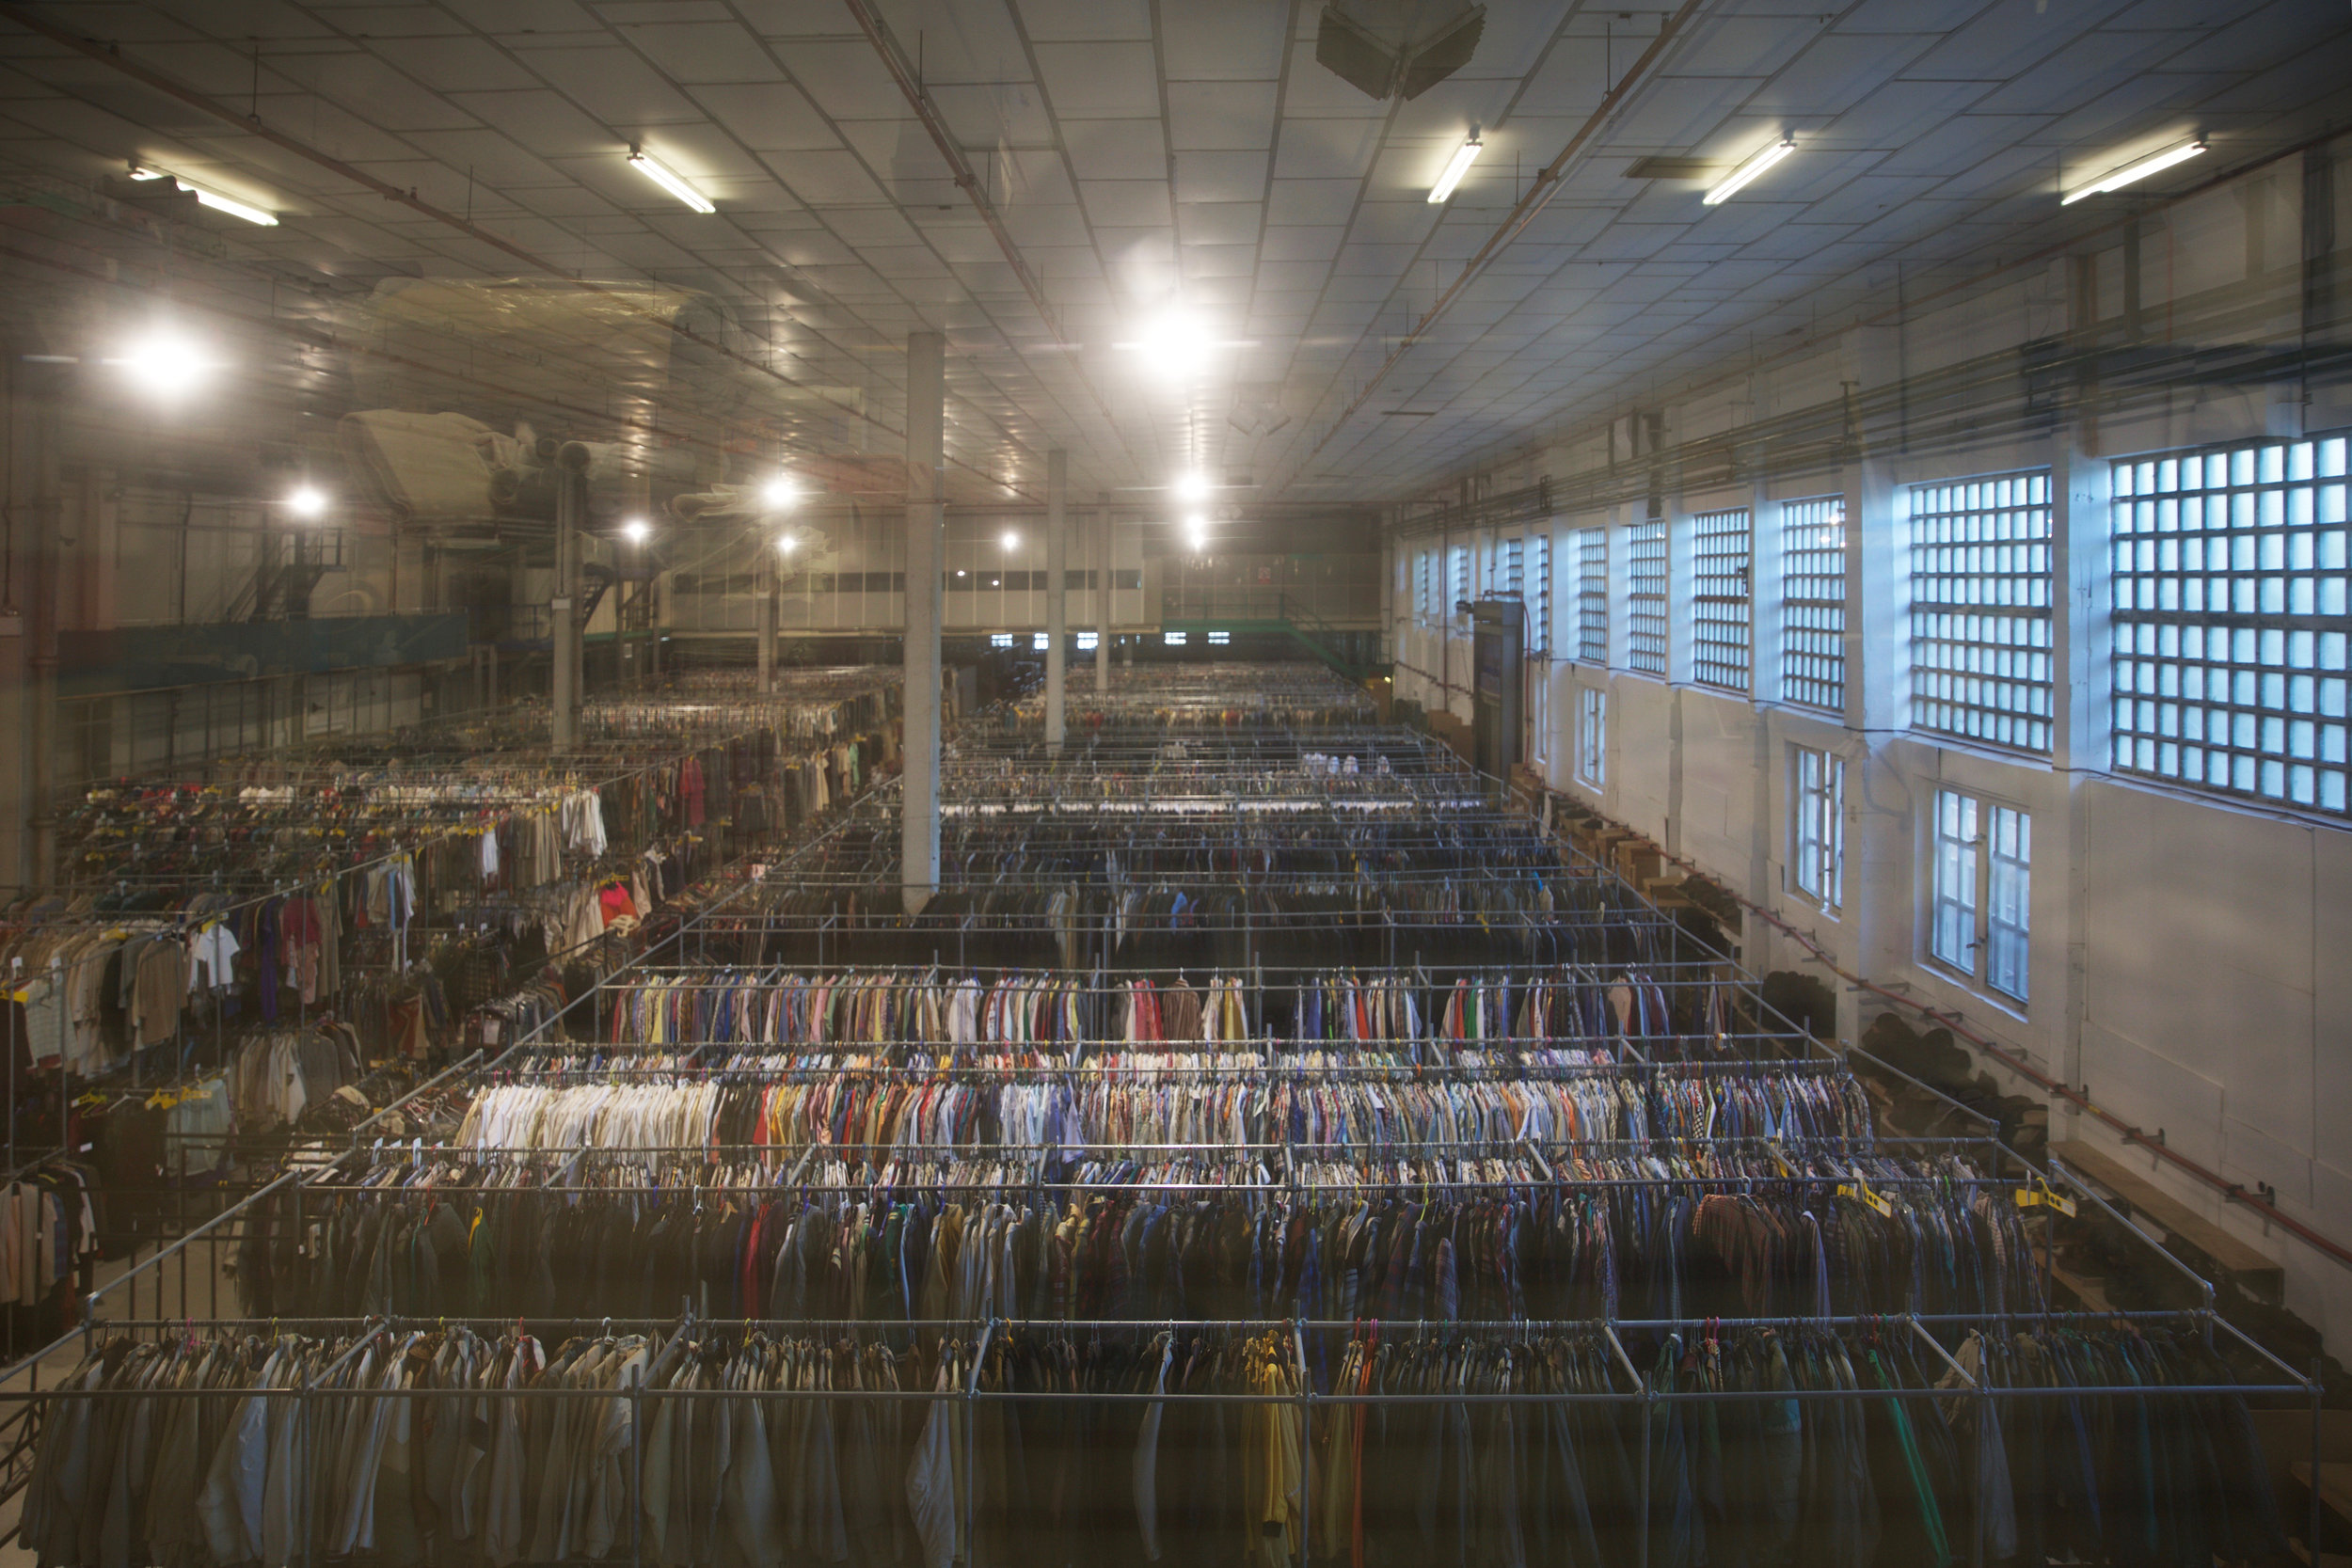 The warehouse full of costumes on the first floor at Bristol Costumer Services